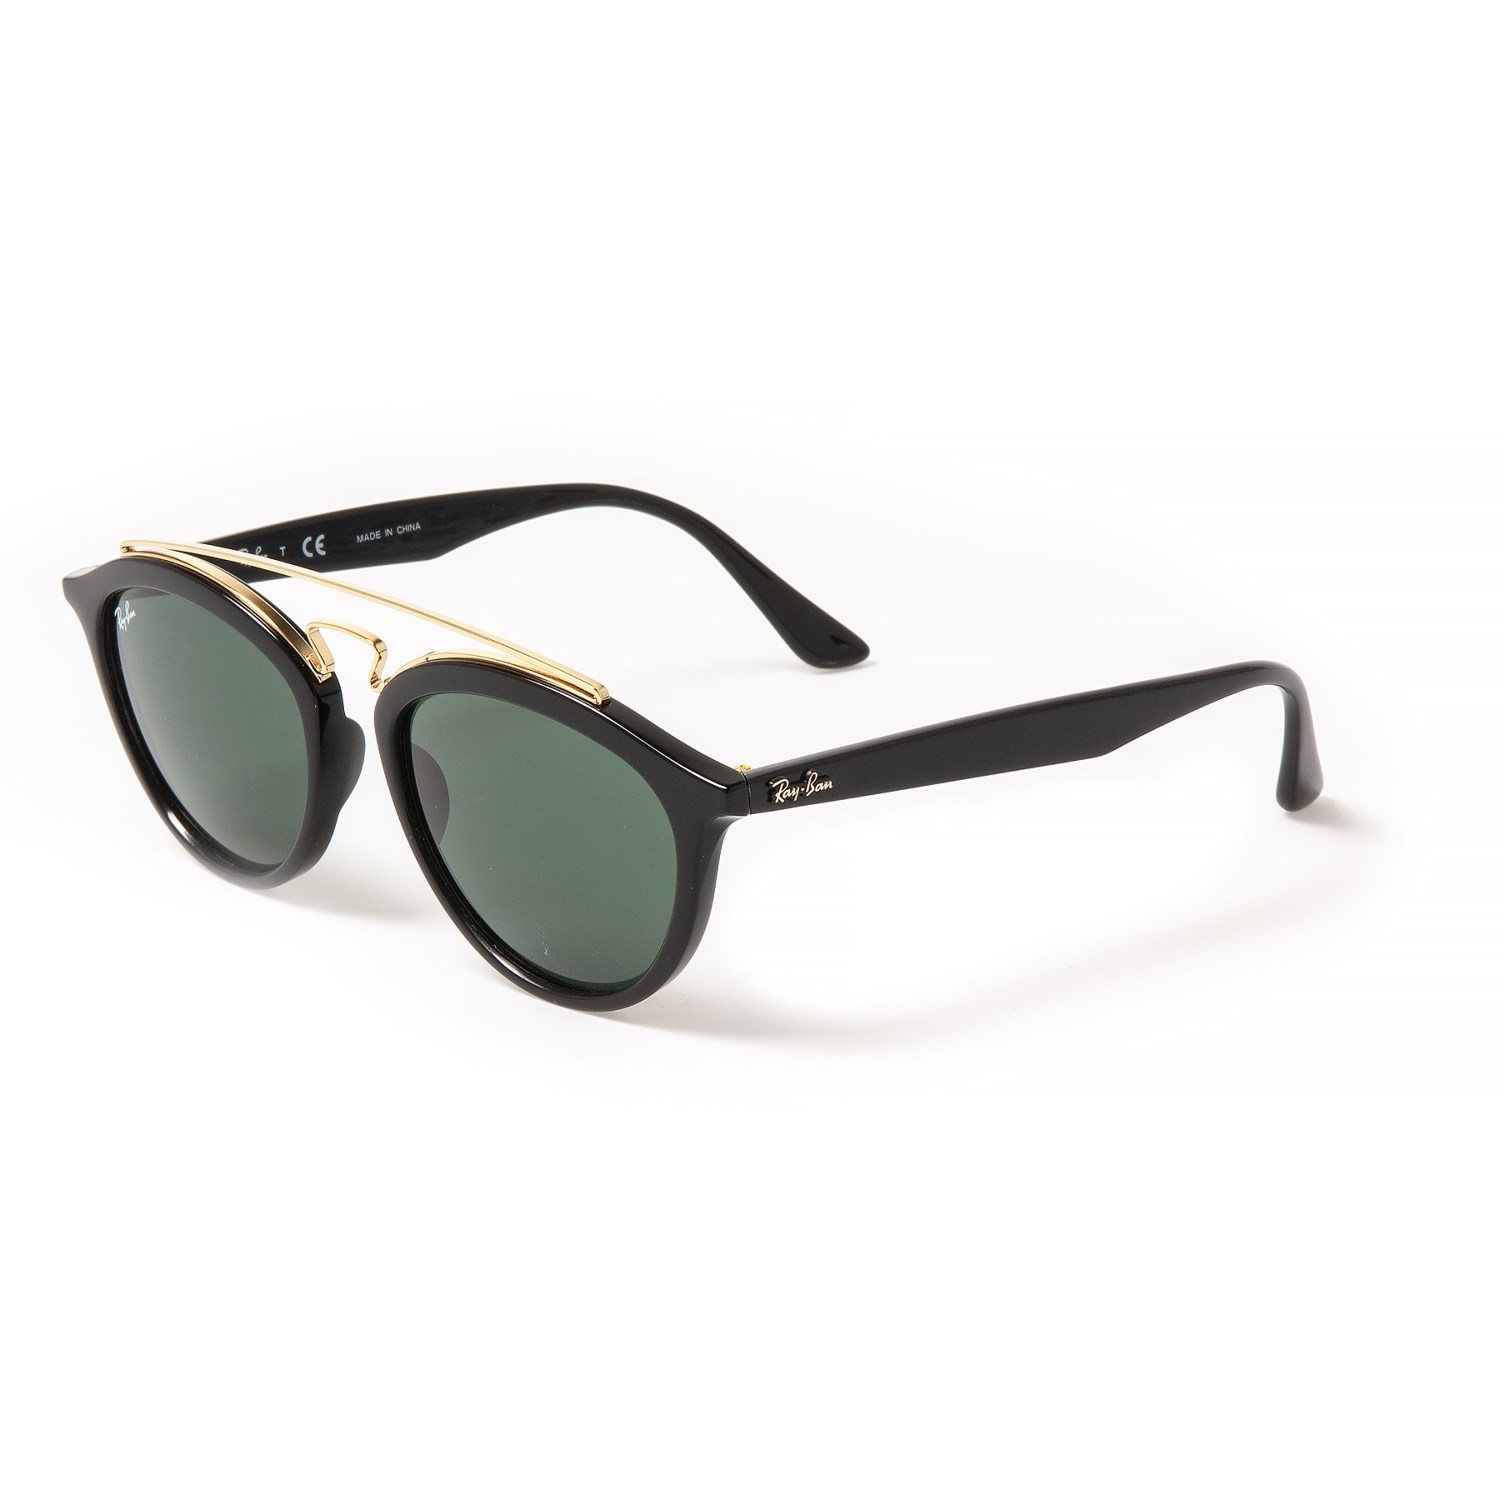 4b2bb203a086 Ray-Ban Injected Sunglasses (For Women) in Black/Dark Green ...